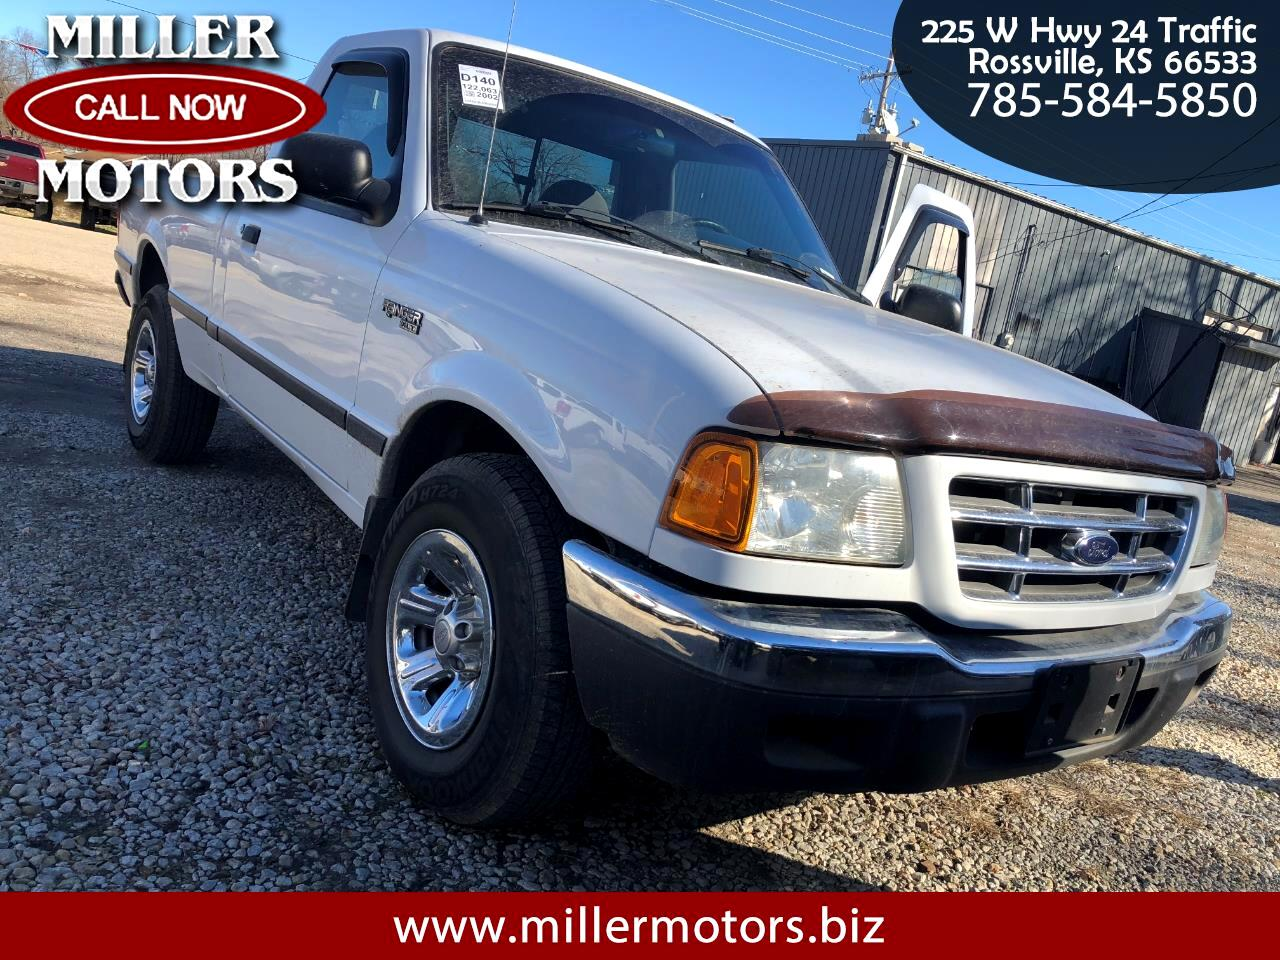 2002 Ford Ranger Regular Cab 2WD